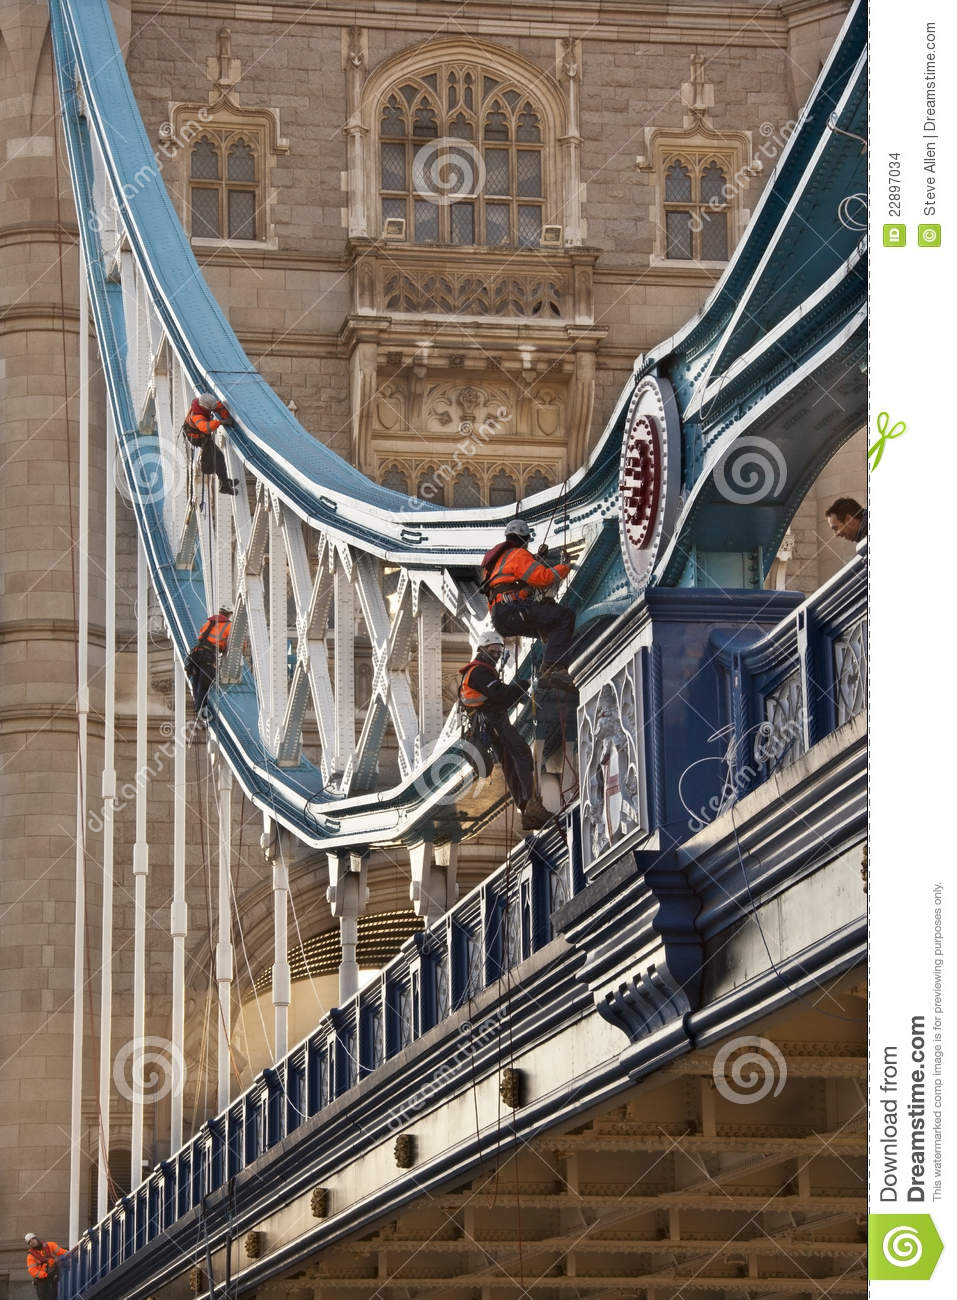 Maintenance work on the iconic landmark of tower bridge over the river